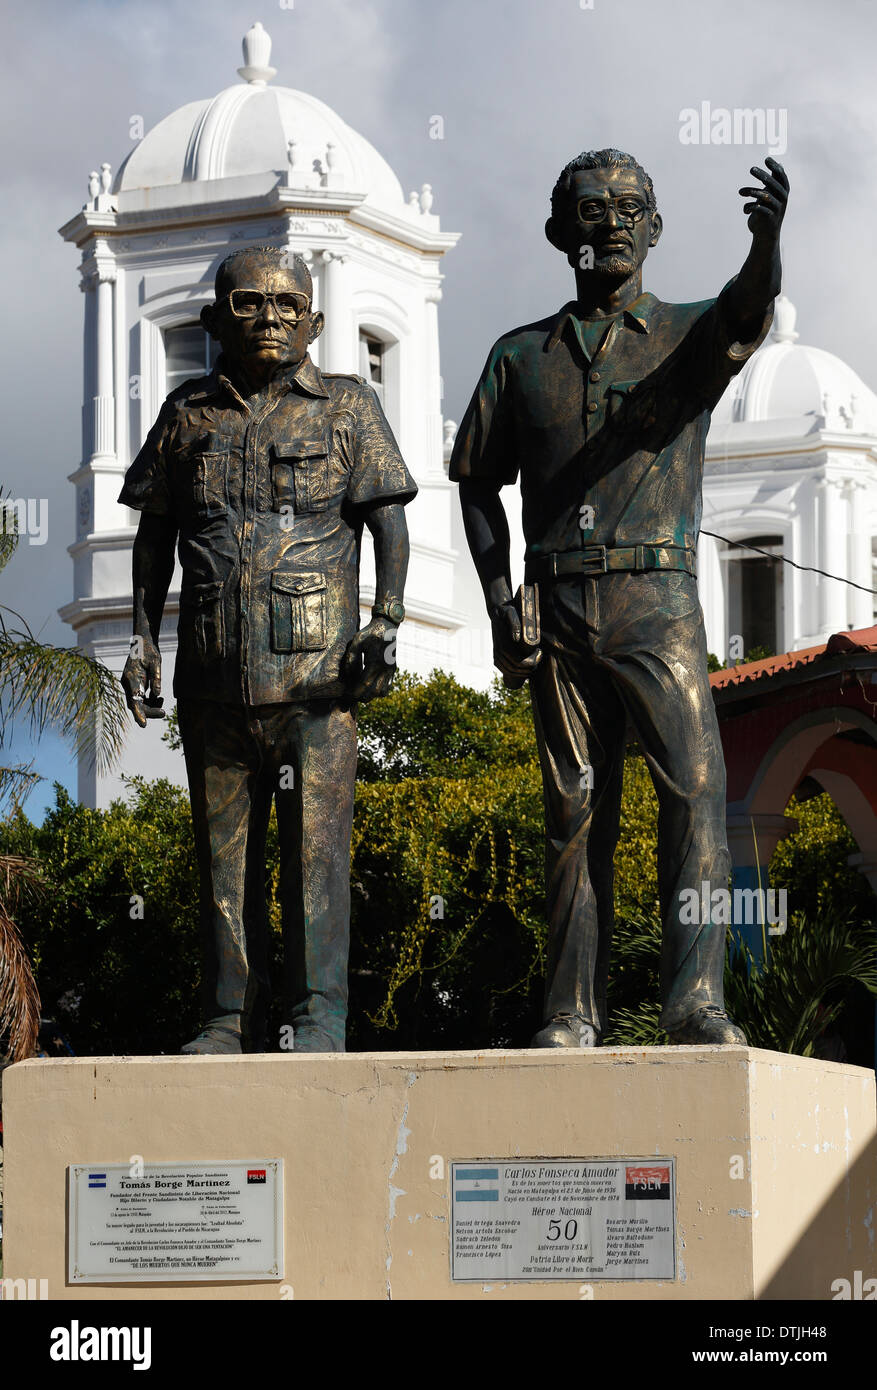 Statues to revolutionary figures Tomas Martinez and Carlos Amador, in front of the cathedral in Matagalpa, Nicaragua - Stock Image